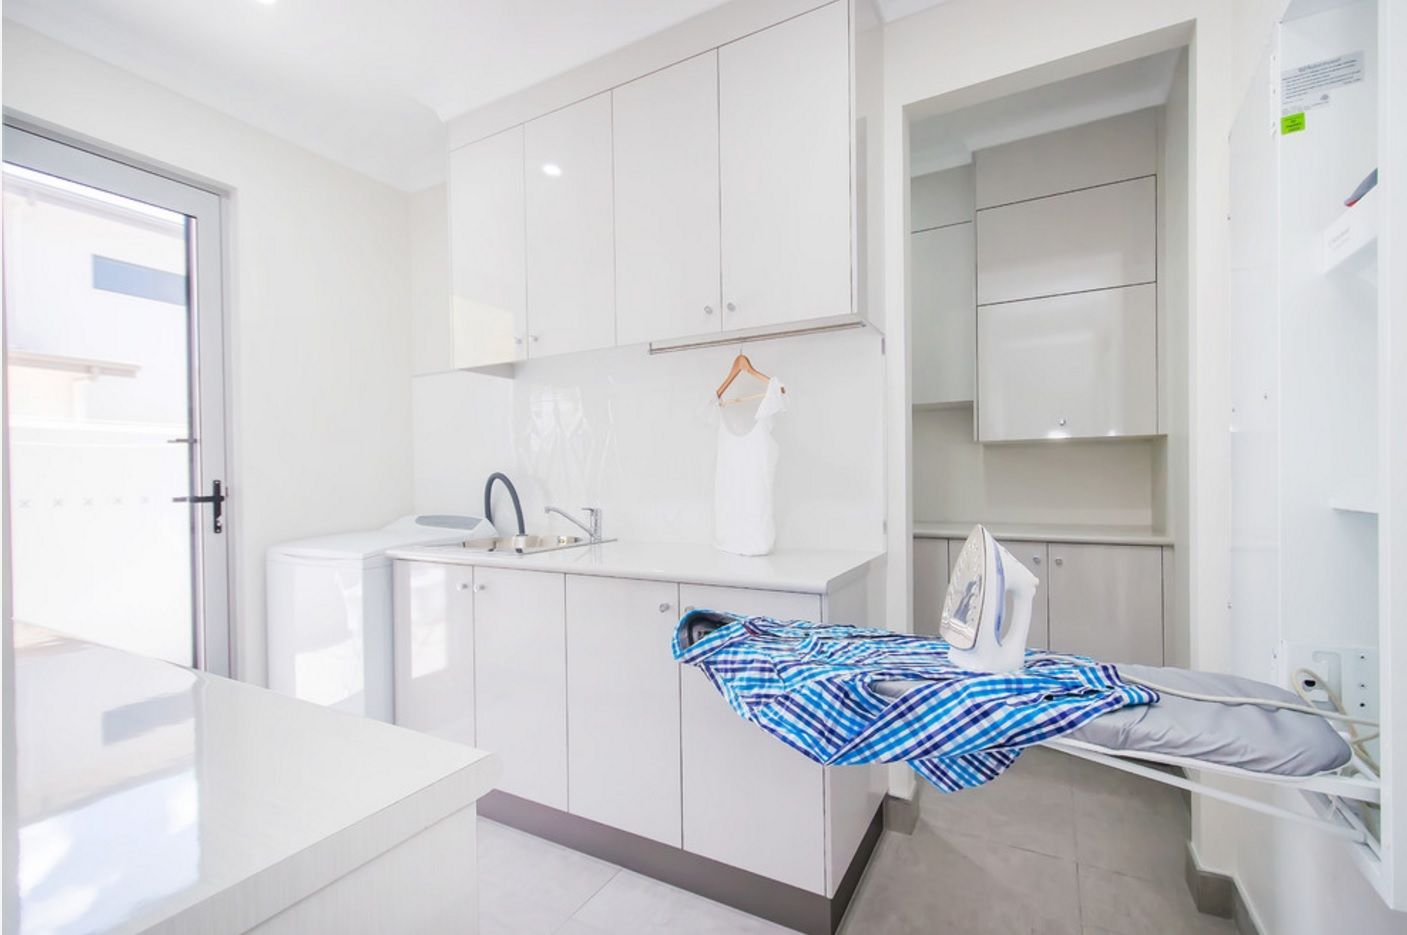 Laundry Allocation Options for Modern Home Interior. Separate room in the large house